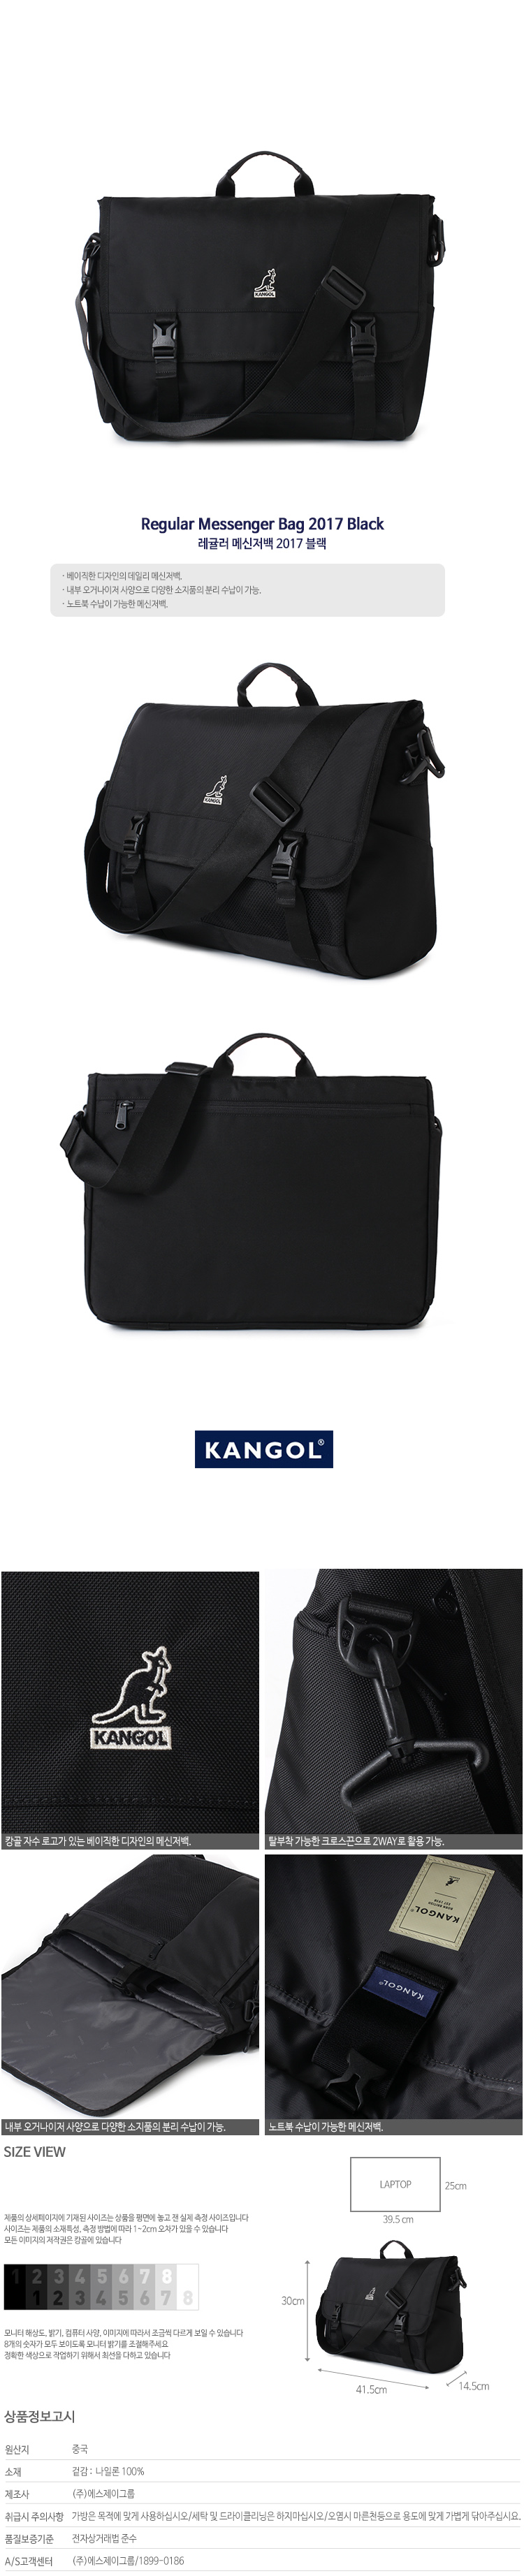 캉골(KANGOL) Regular Messenger Bag 2017 BLACK